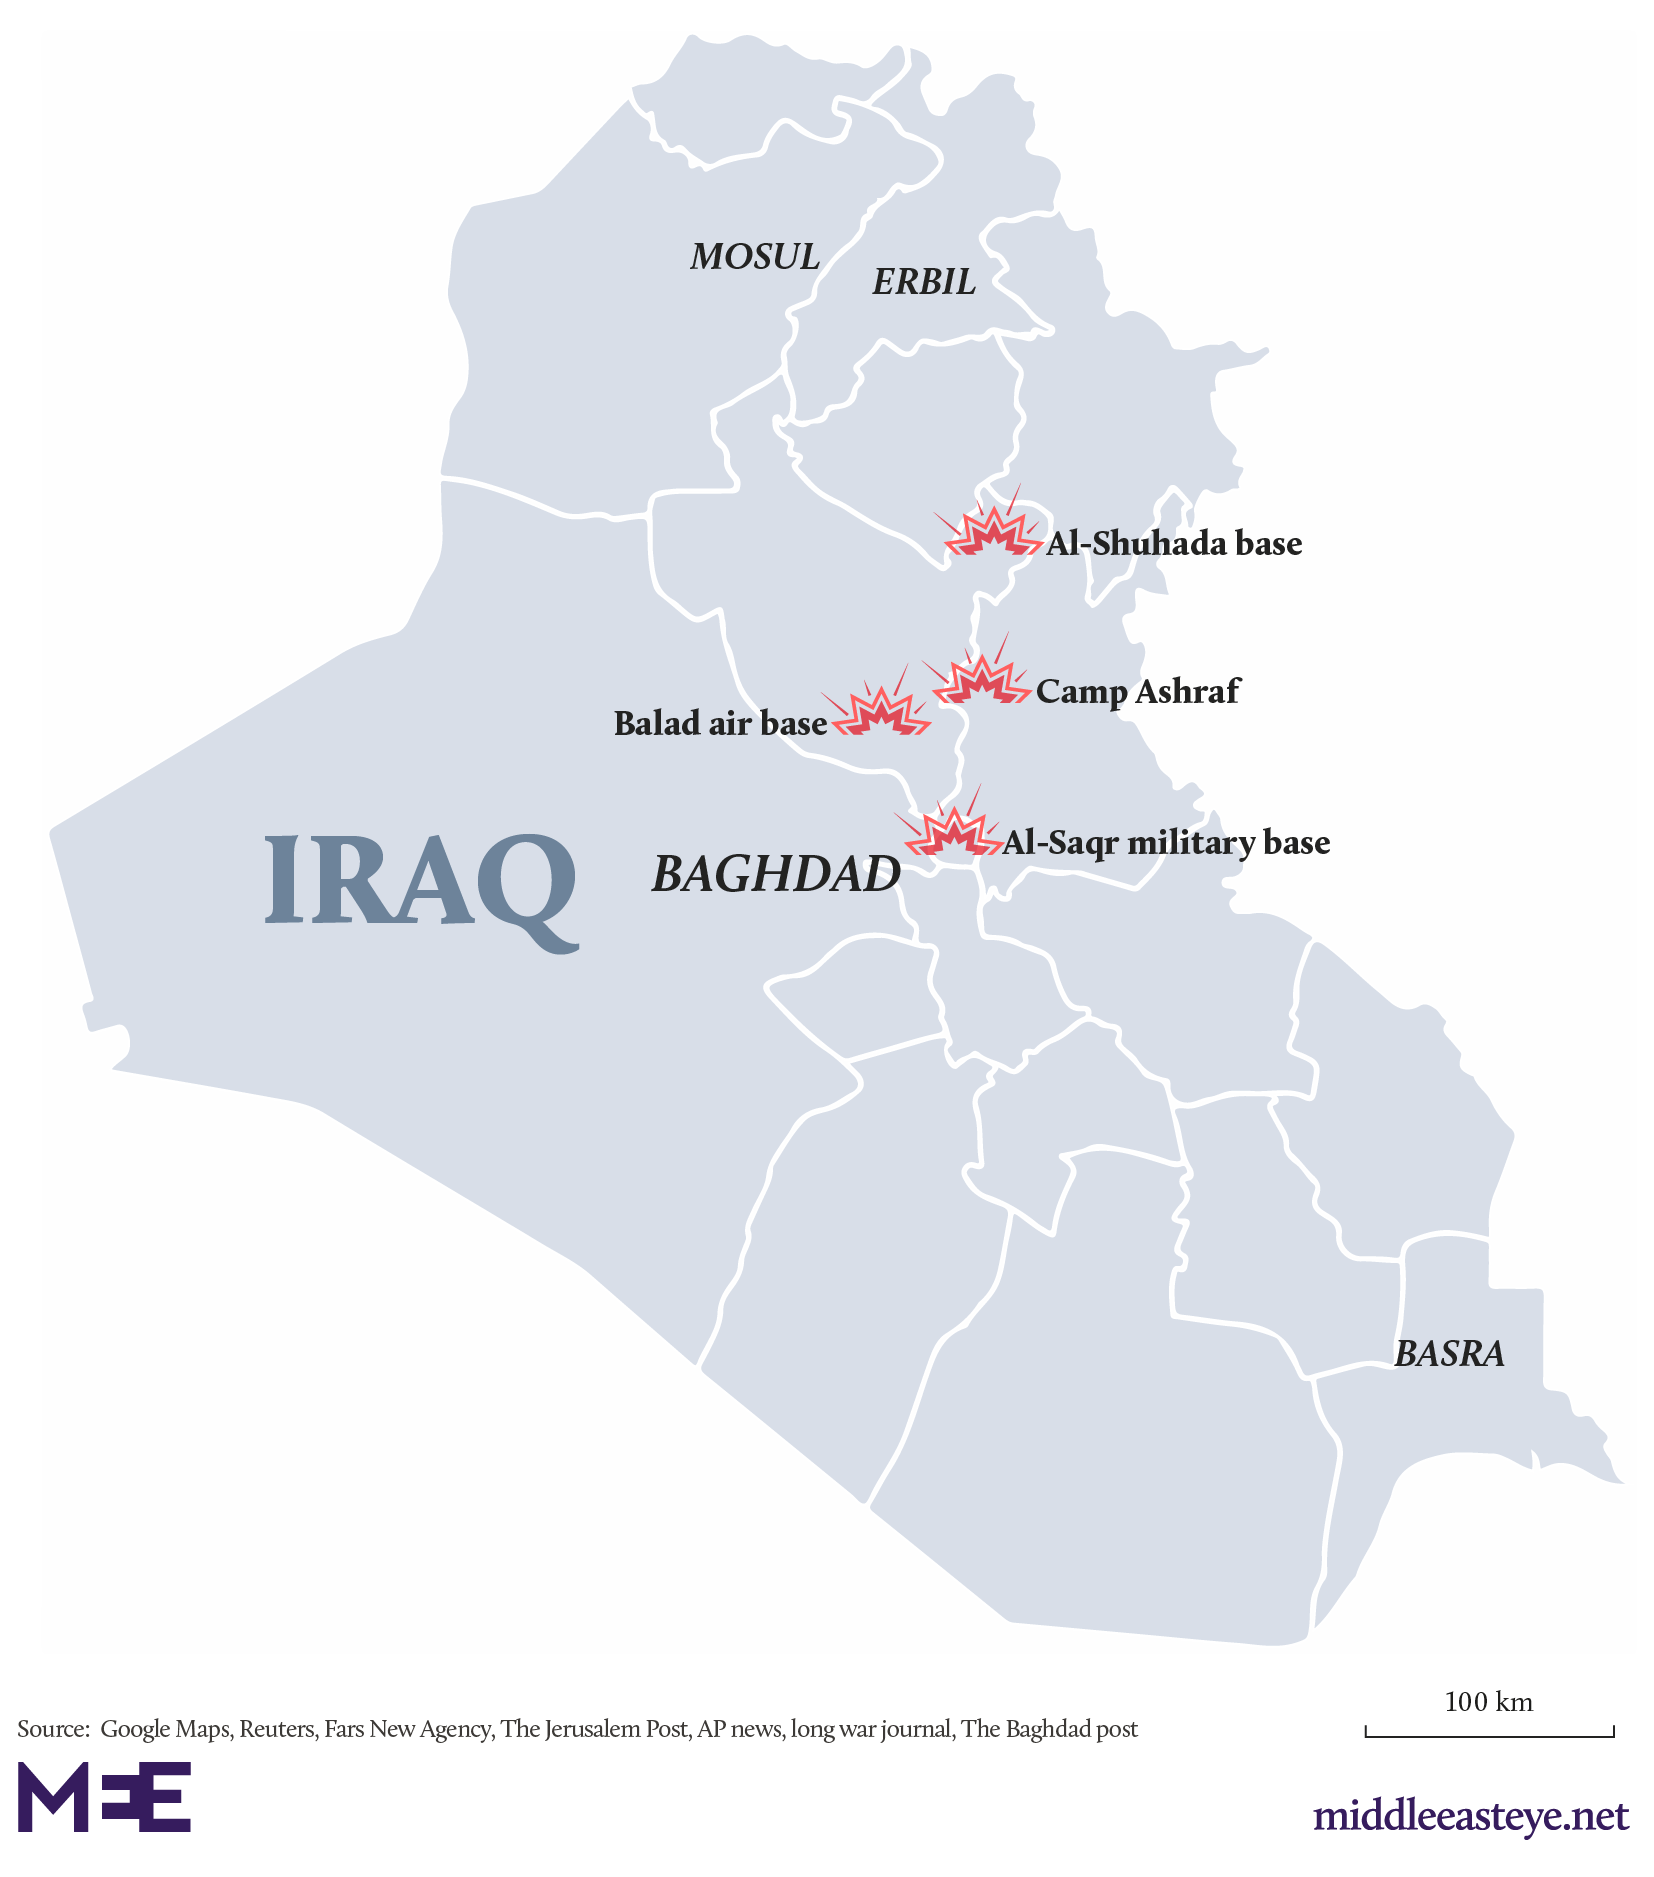 Iraq bases attack map